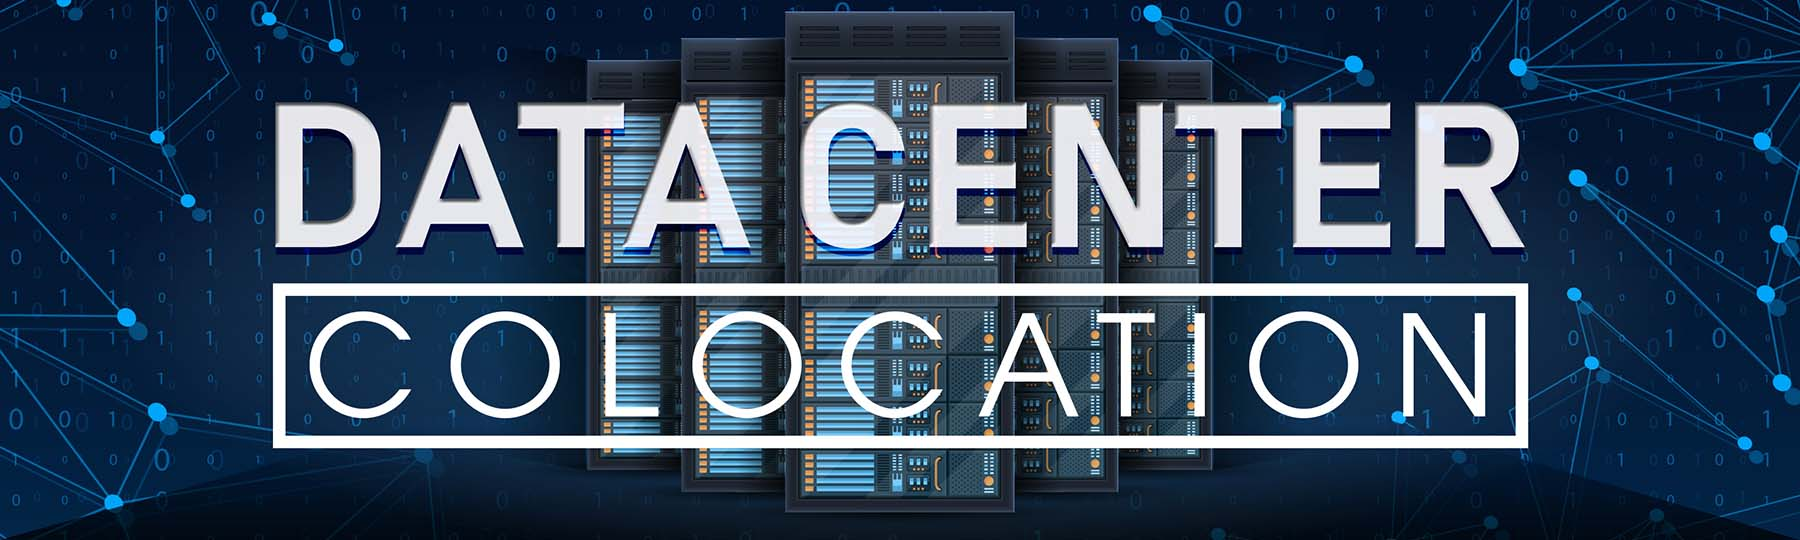 Data Center Colocation banner